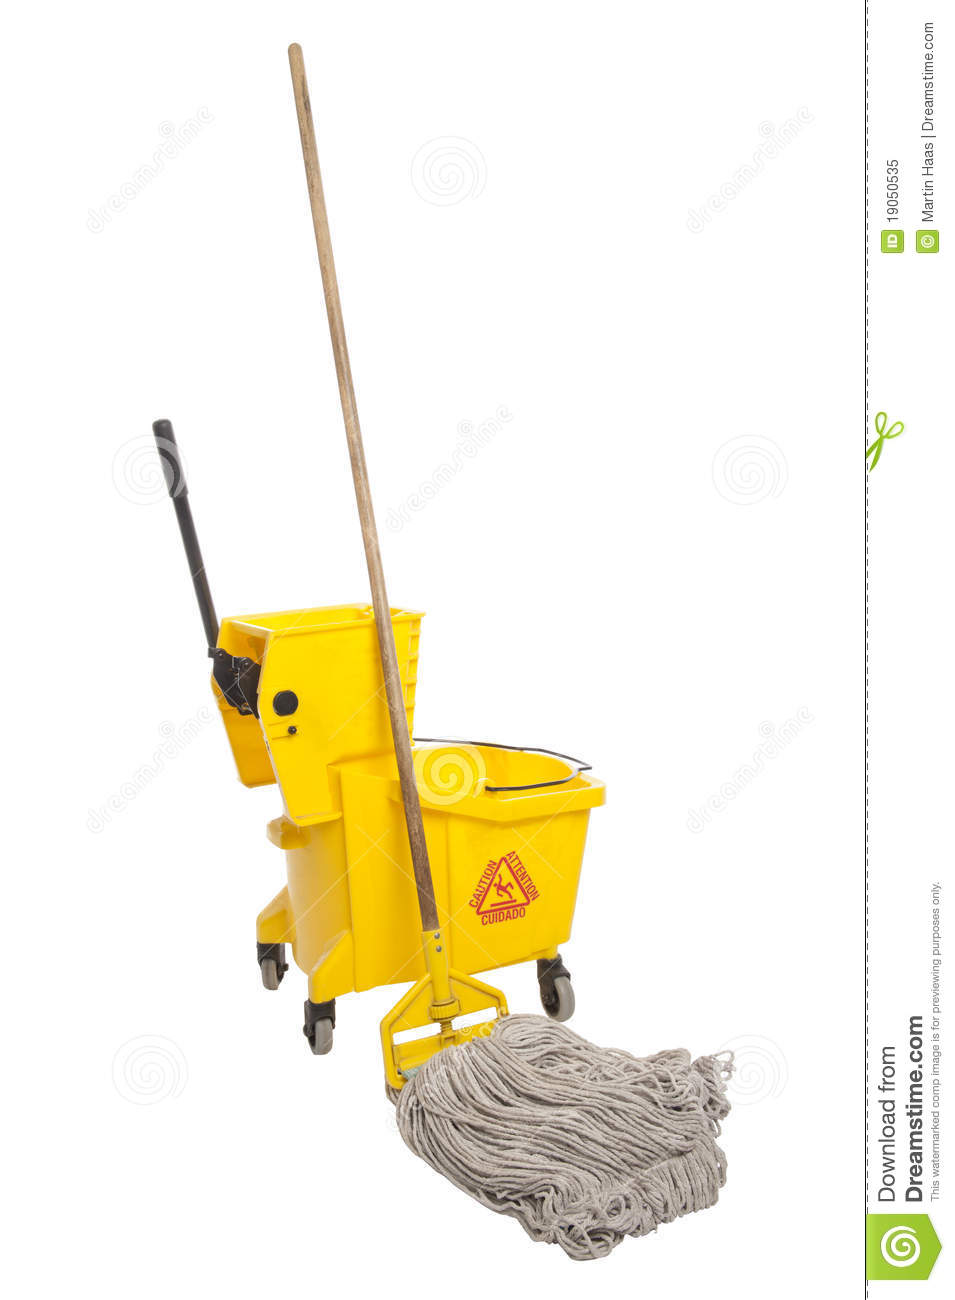 Industrial Mop And Bucket Royalty Free Stock Photo  Image: 19050535